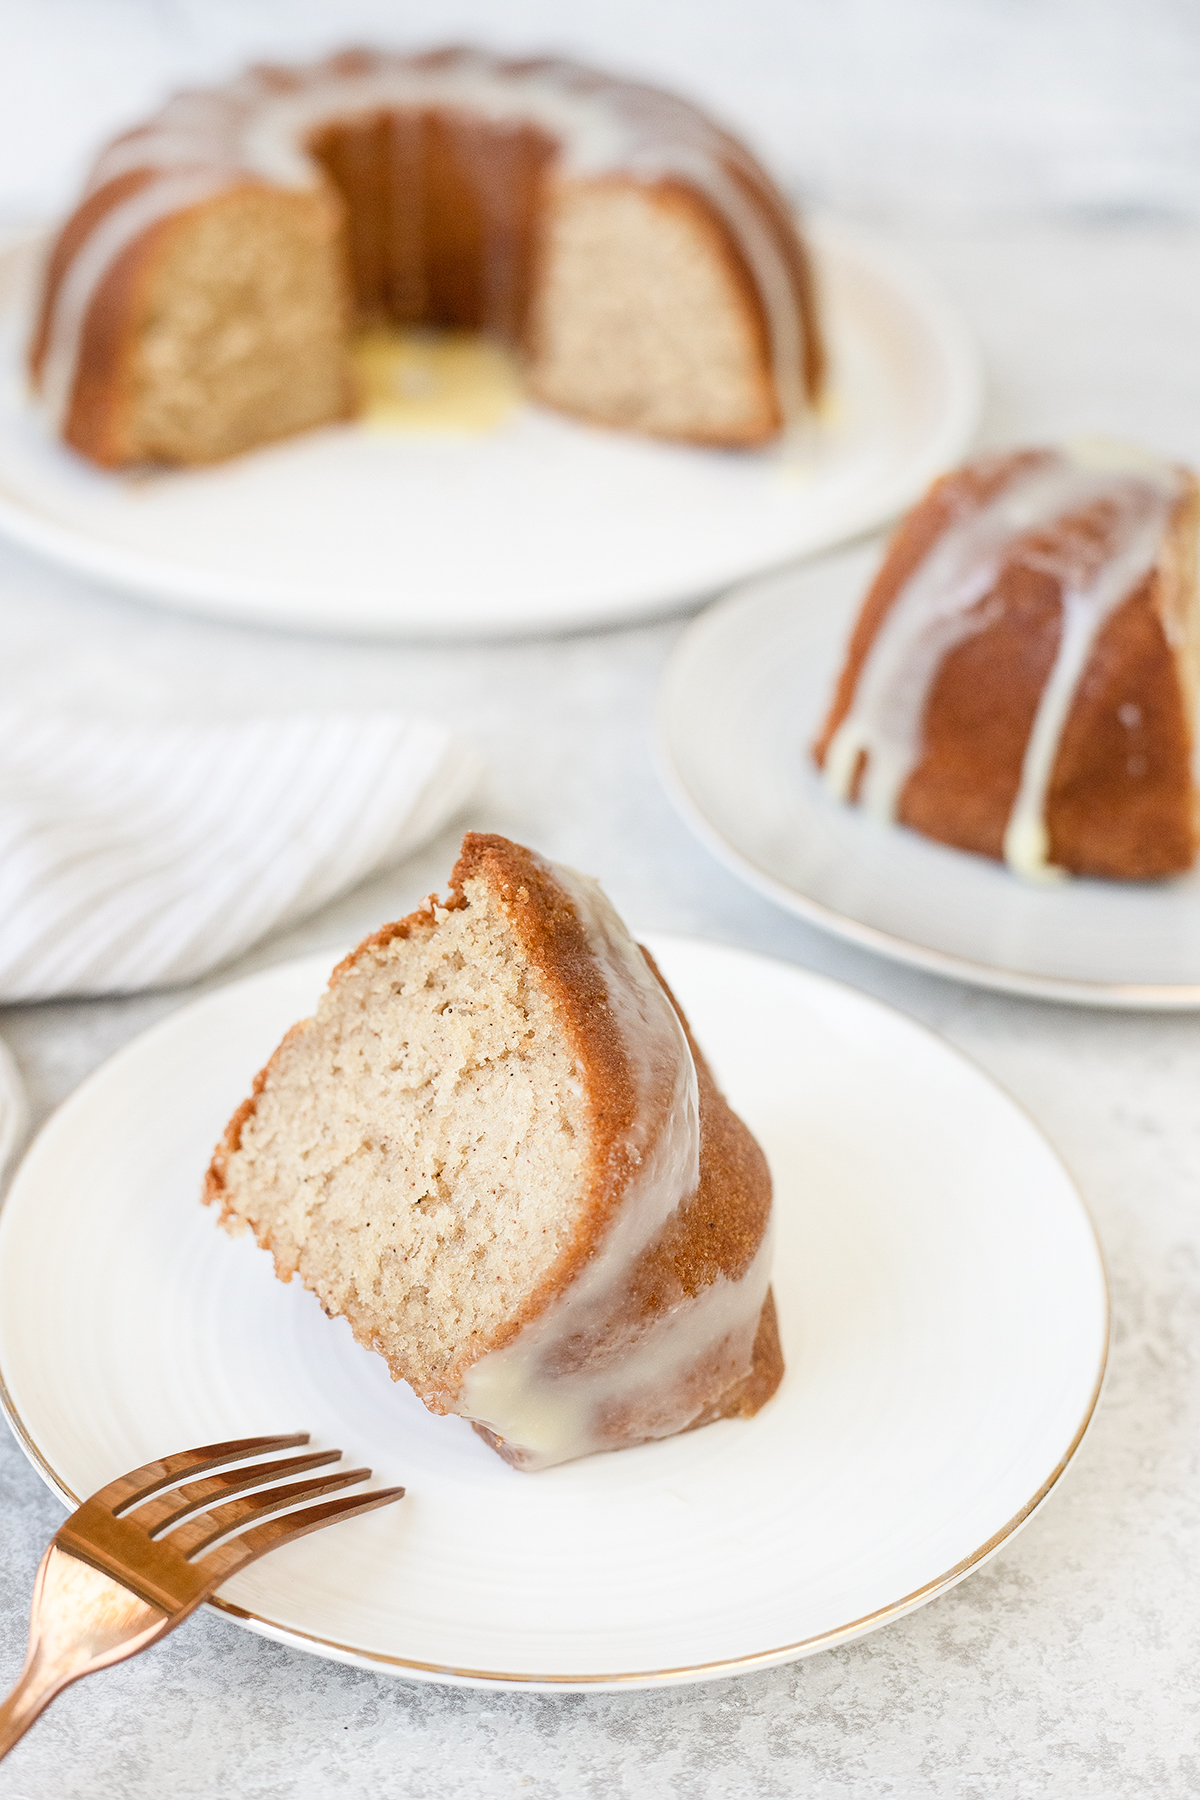 Today's dessert is an eggnog recipe, a super moist eggnog bundt cake.